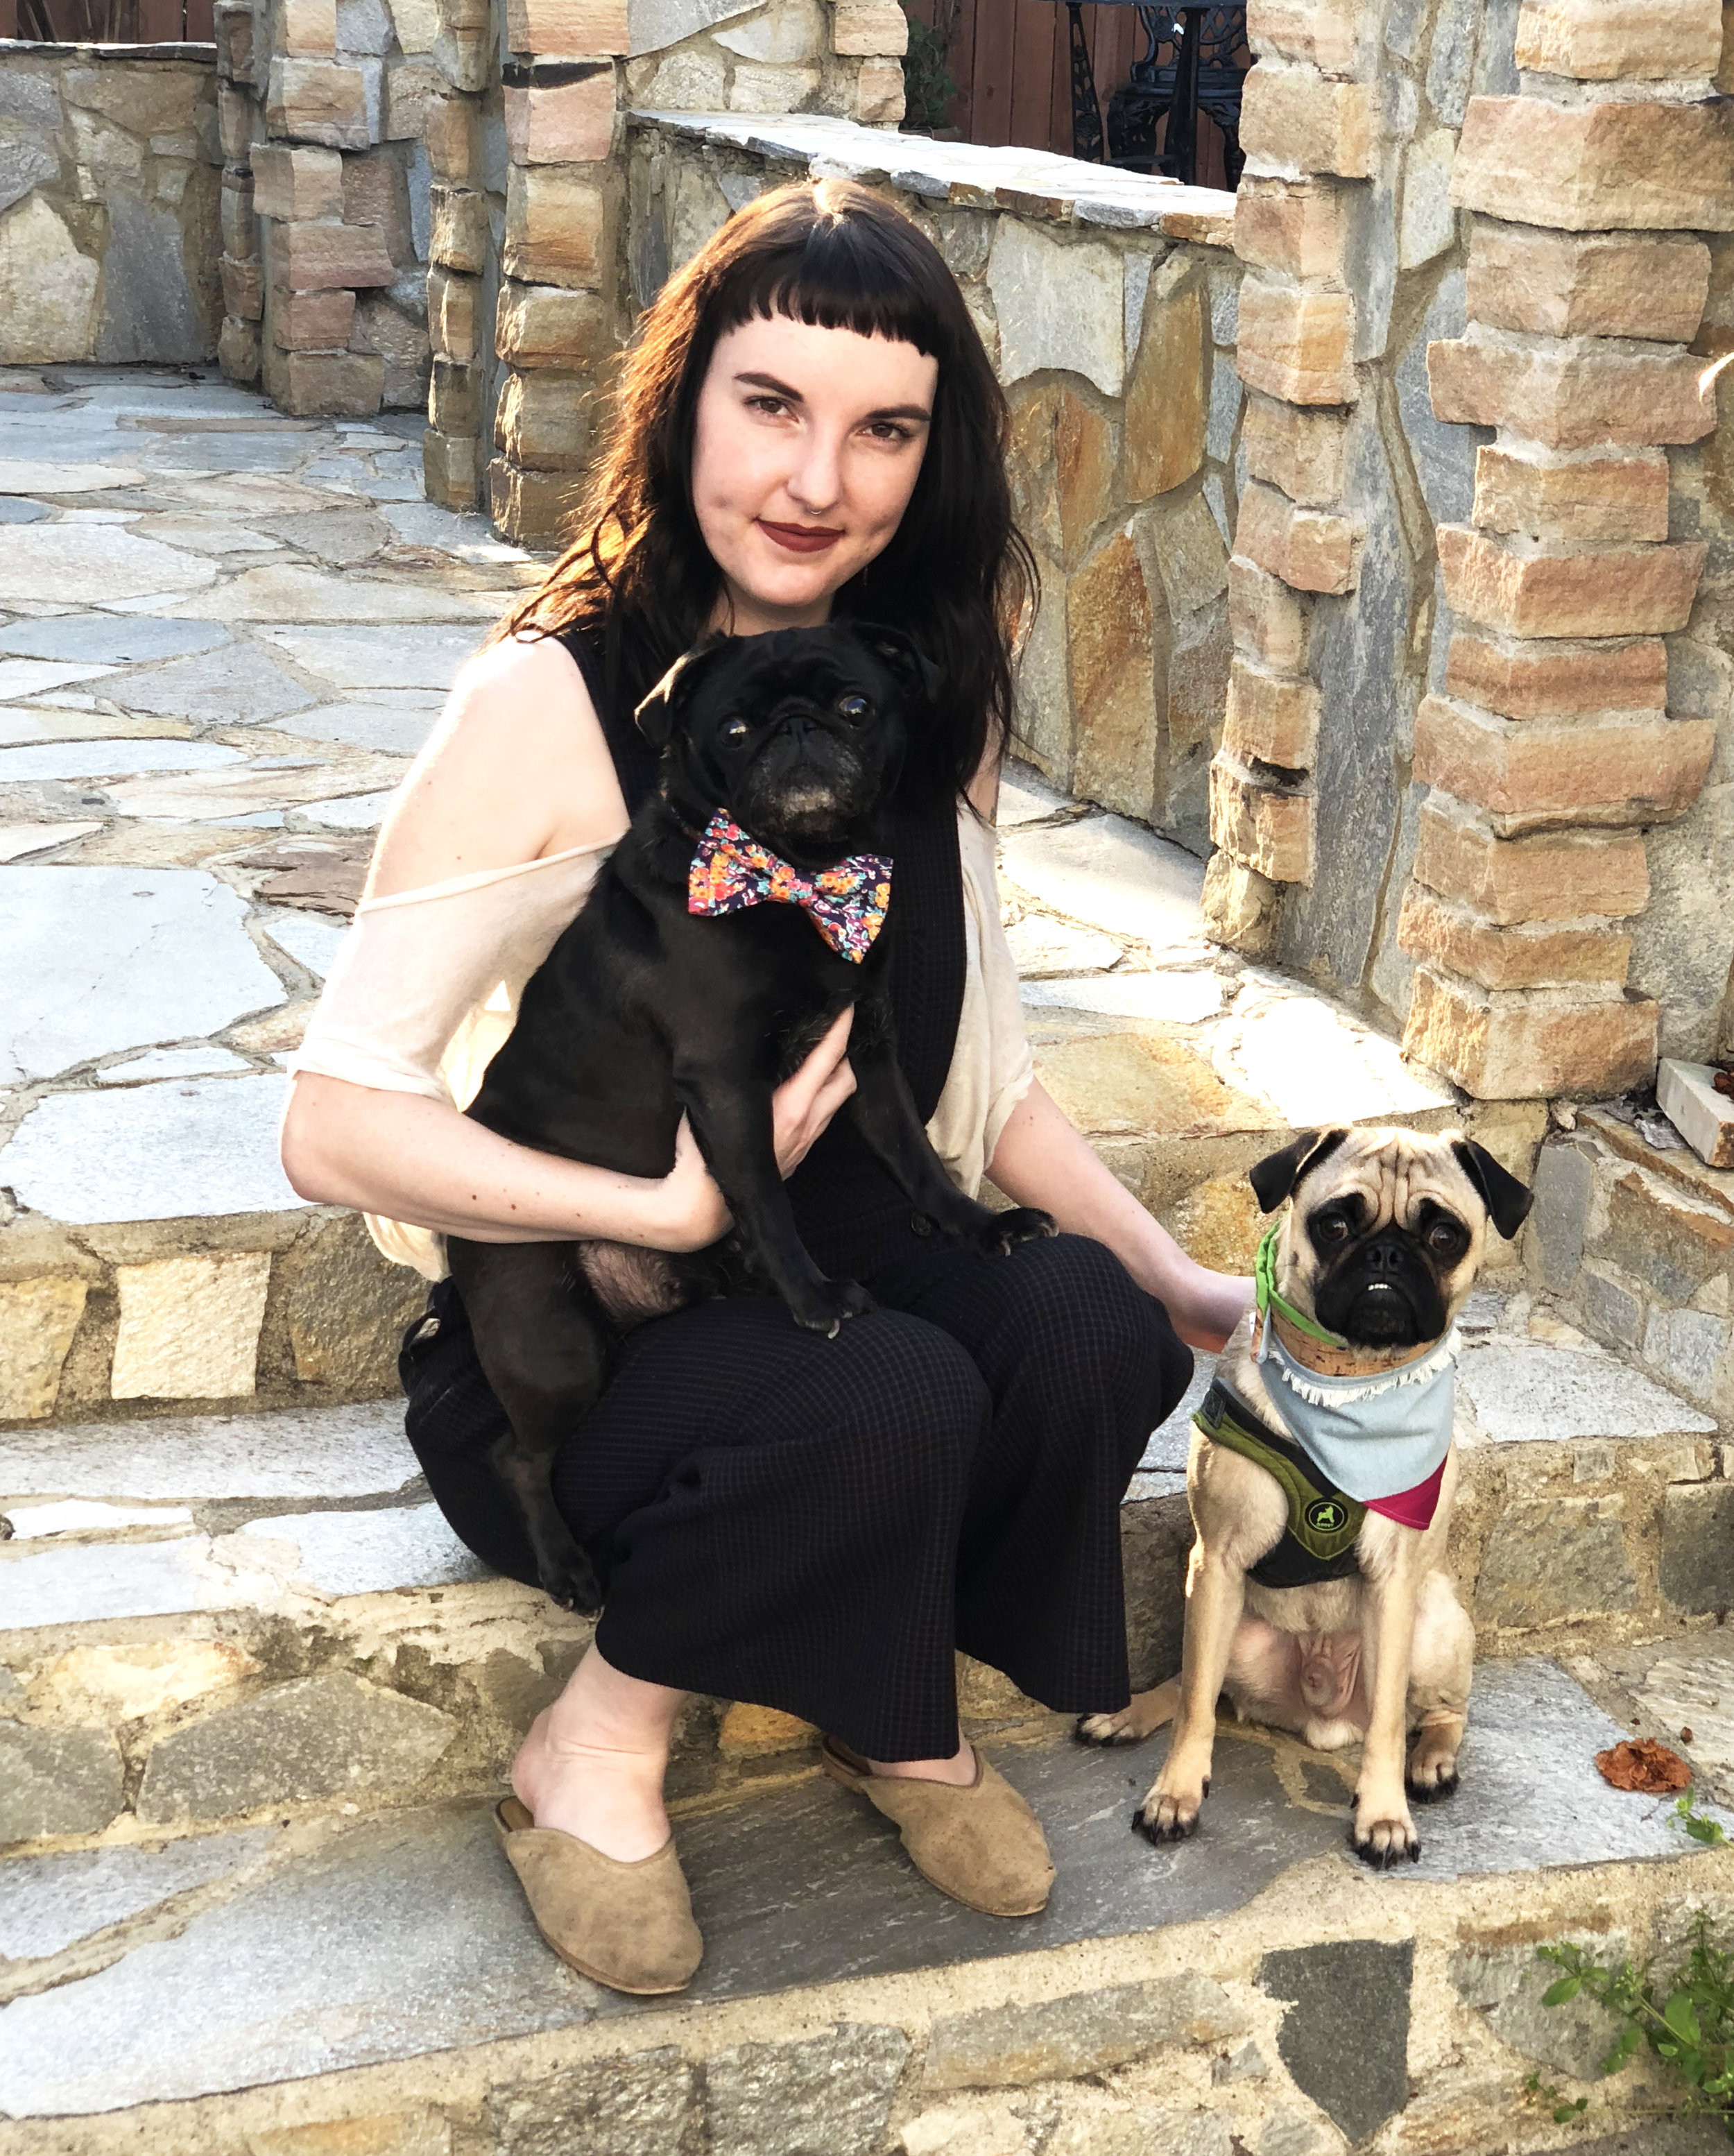 Carlin Traxler with her pugs, Ophelia and Mo